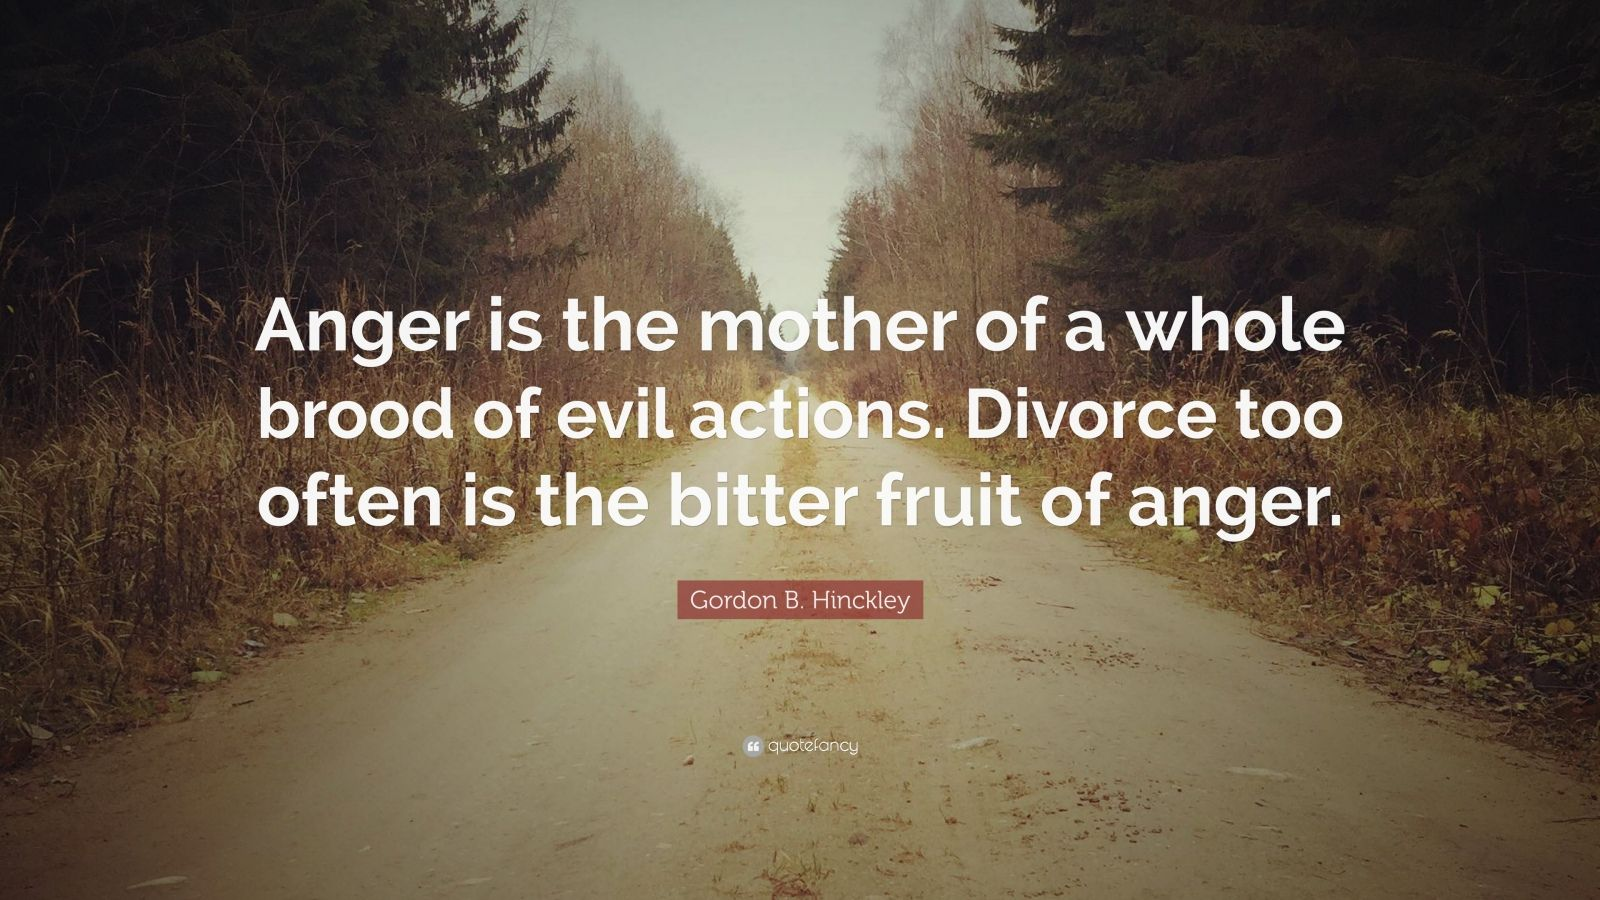 Anger of a mother rayra 7